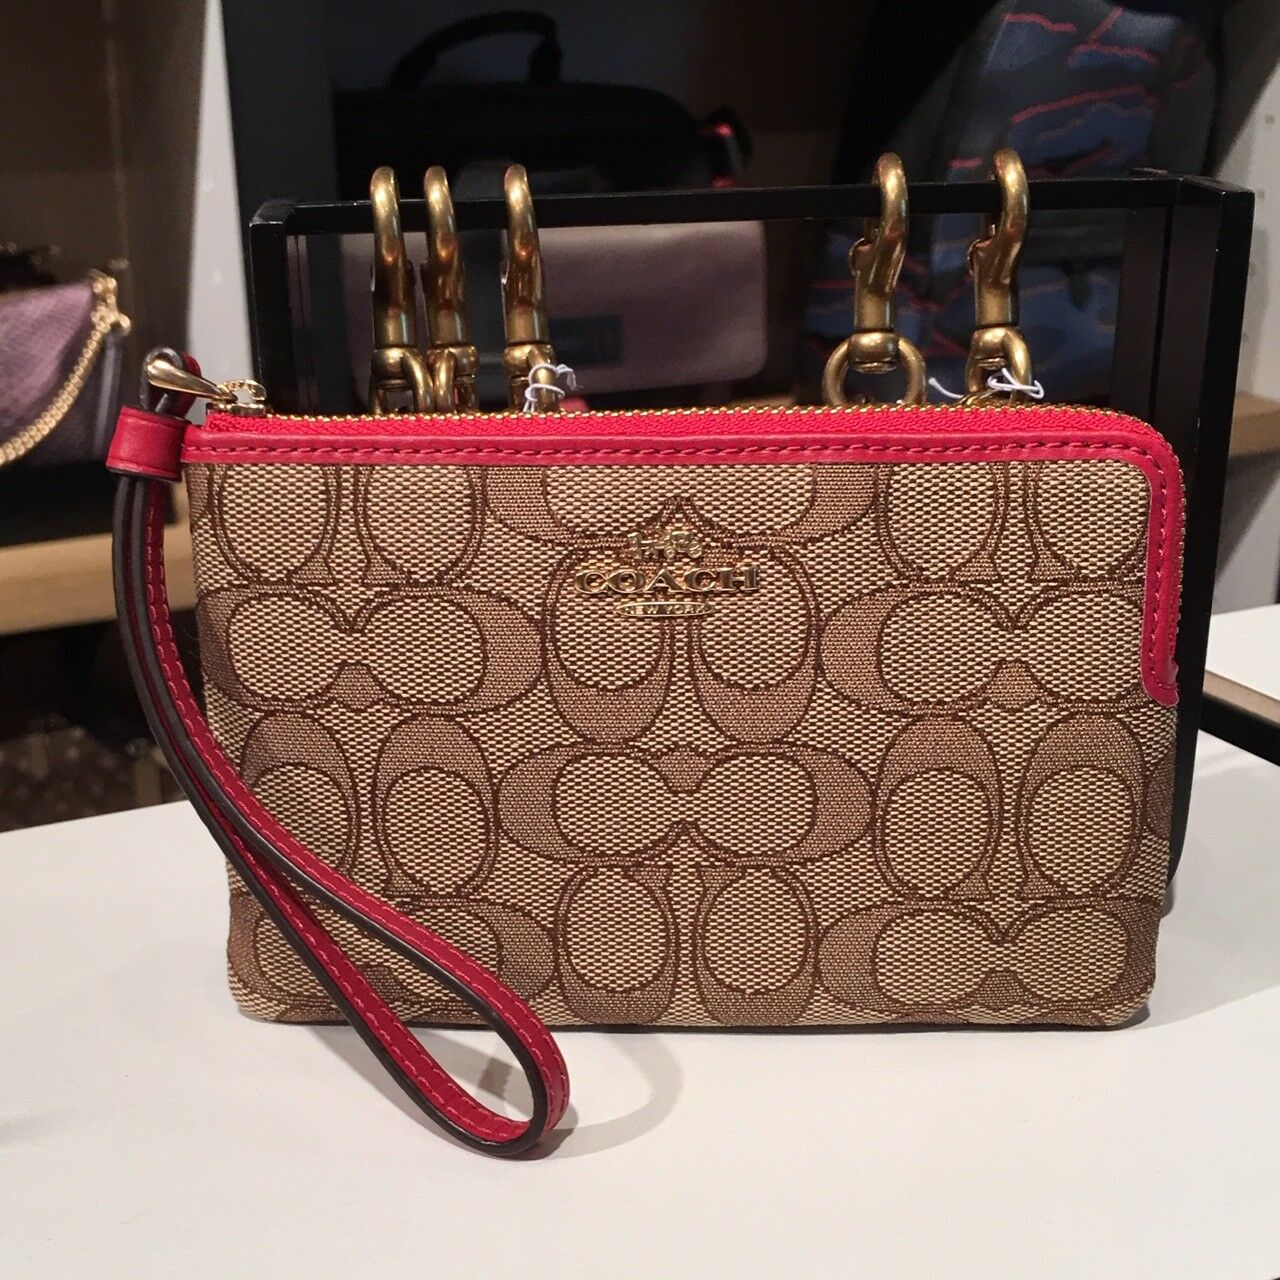 New Coach F58032 F58035 Corner Zip Wristlet With Gift Box New With Tags Khaki True Red Jacquard